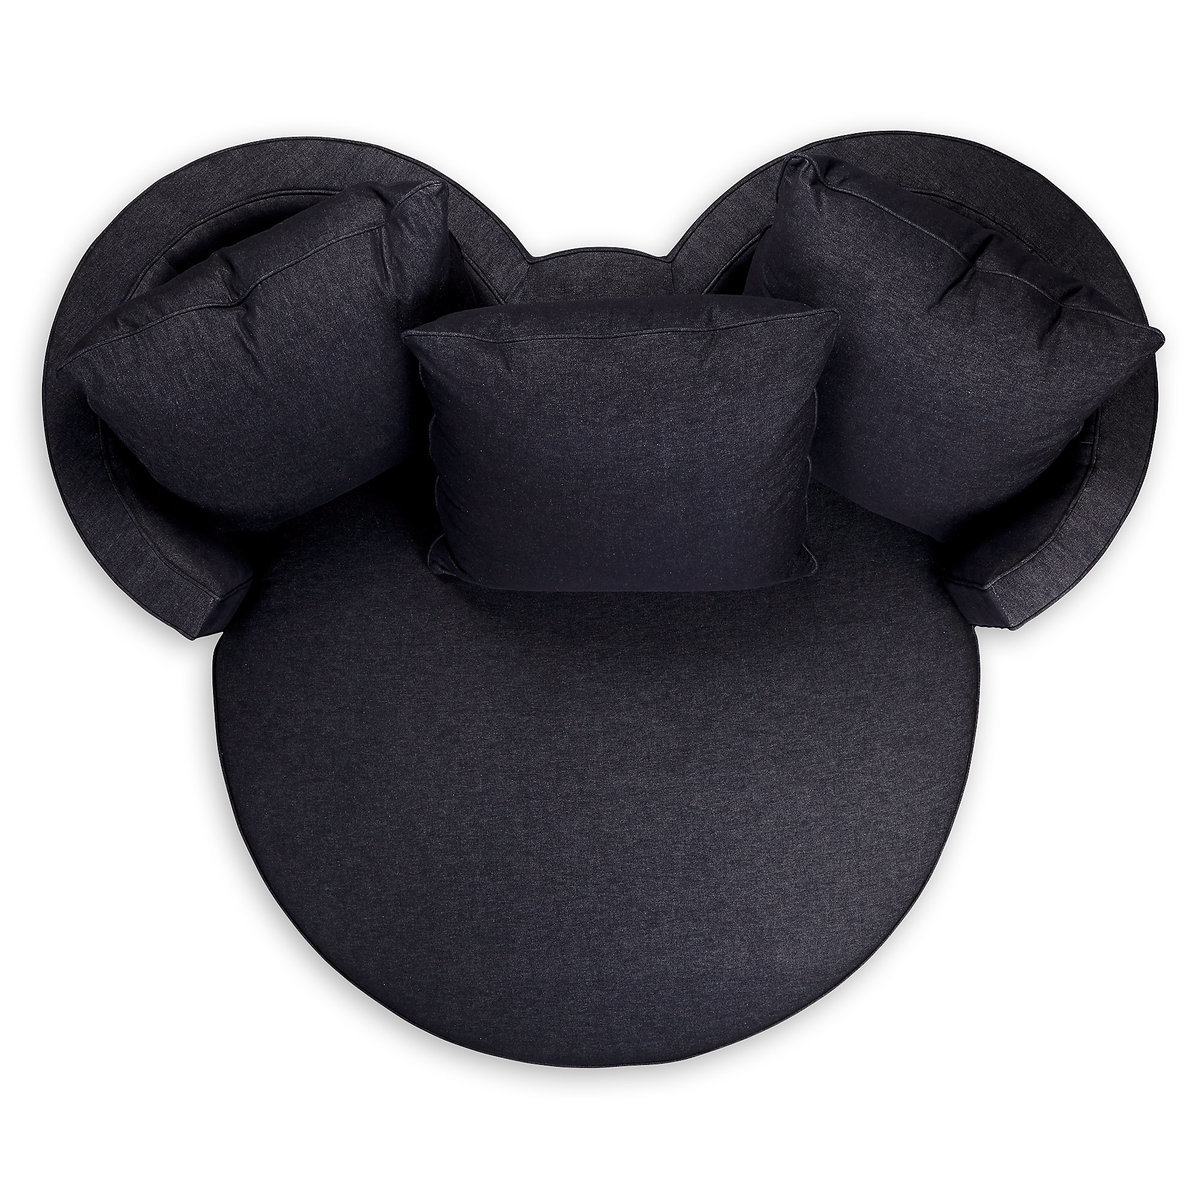 Mickey Mouse Club Chair and a Half by Ethan Allen   shopDisney